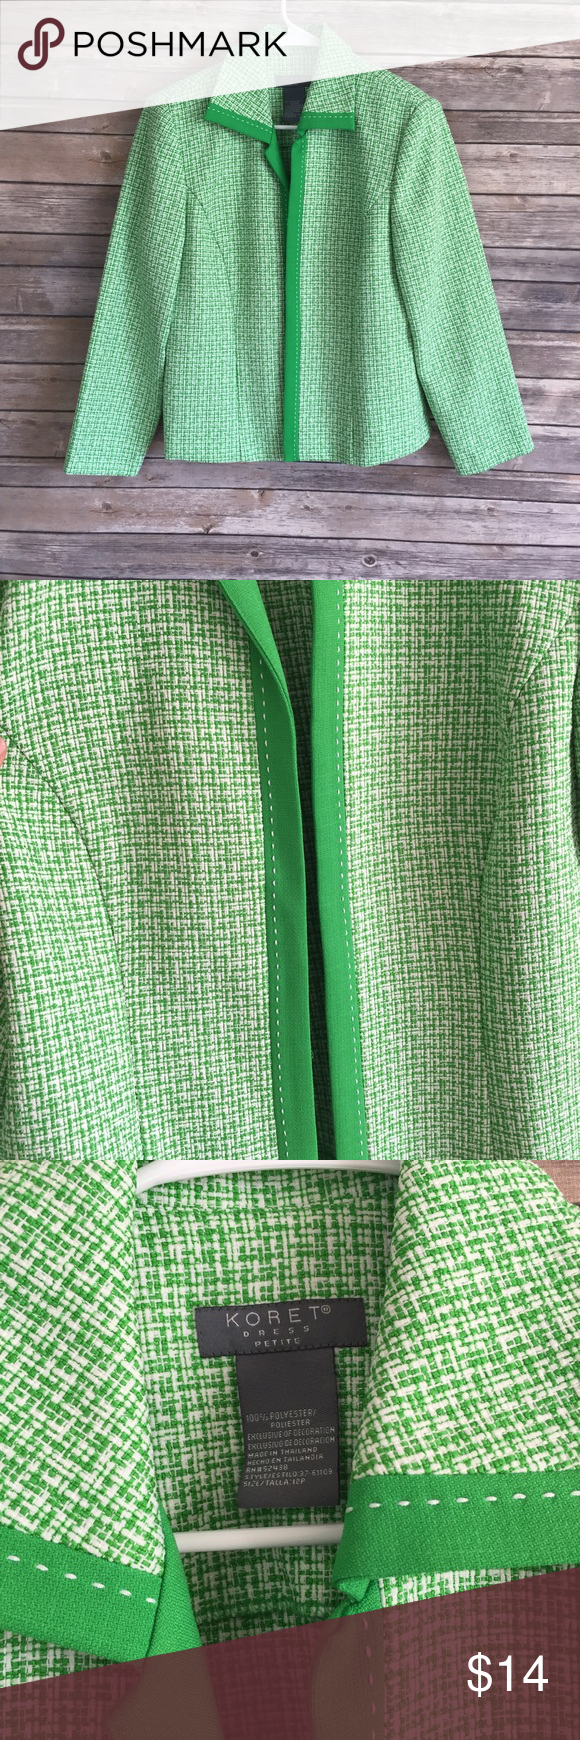 Green and white jacket Excellent jacket in great condition. Very minor signs of wear. No rips or stains. Shoulder pads can easily be cut out (A7) Koret Jackets & Coats